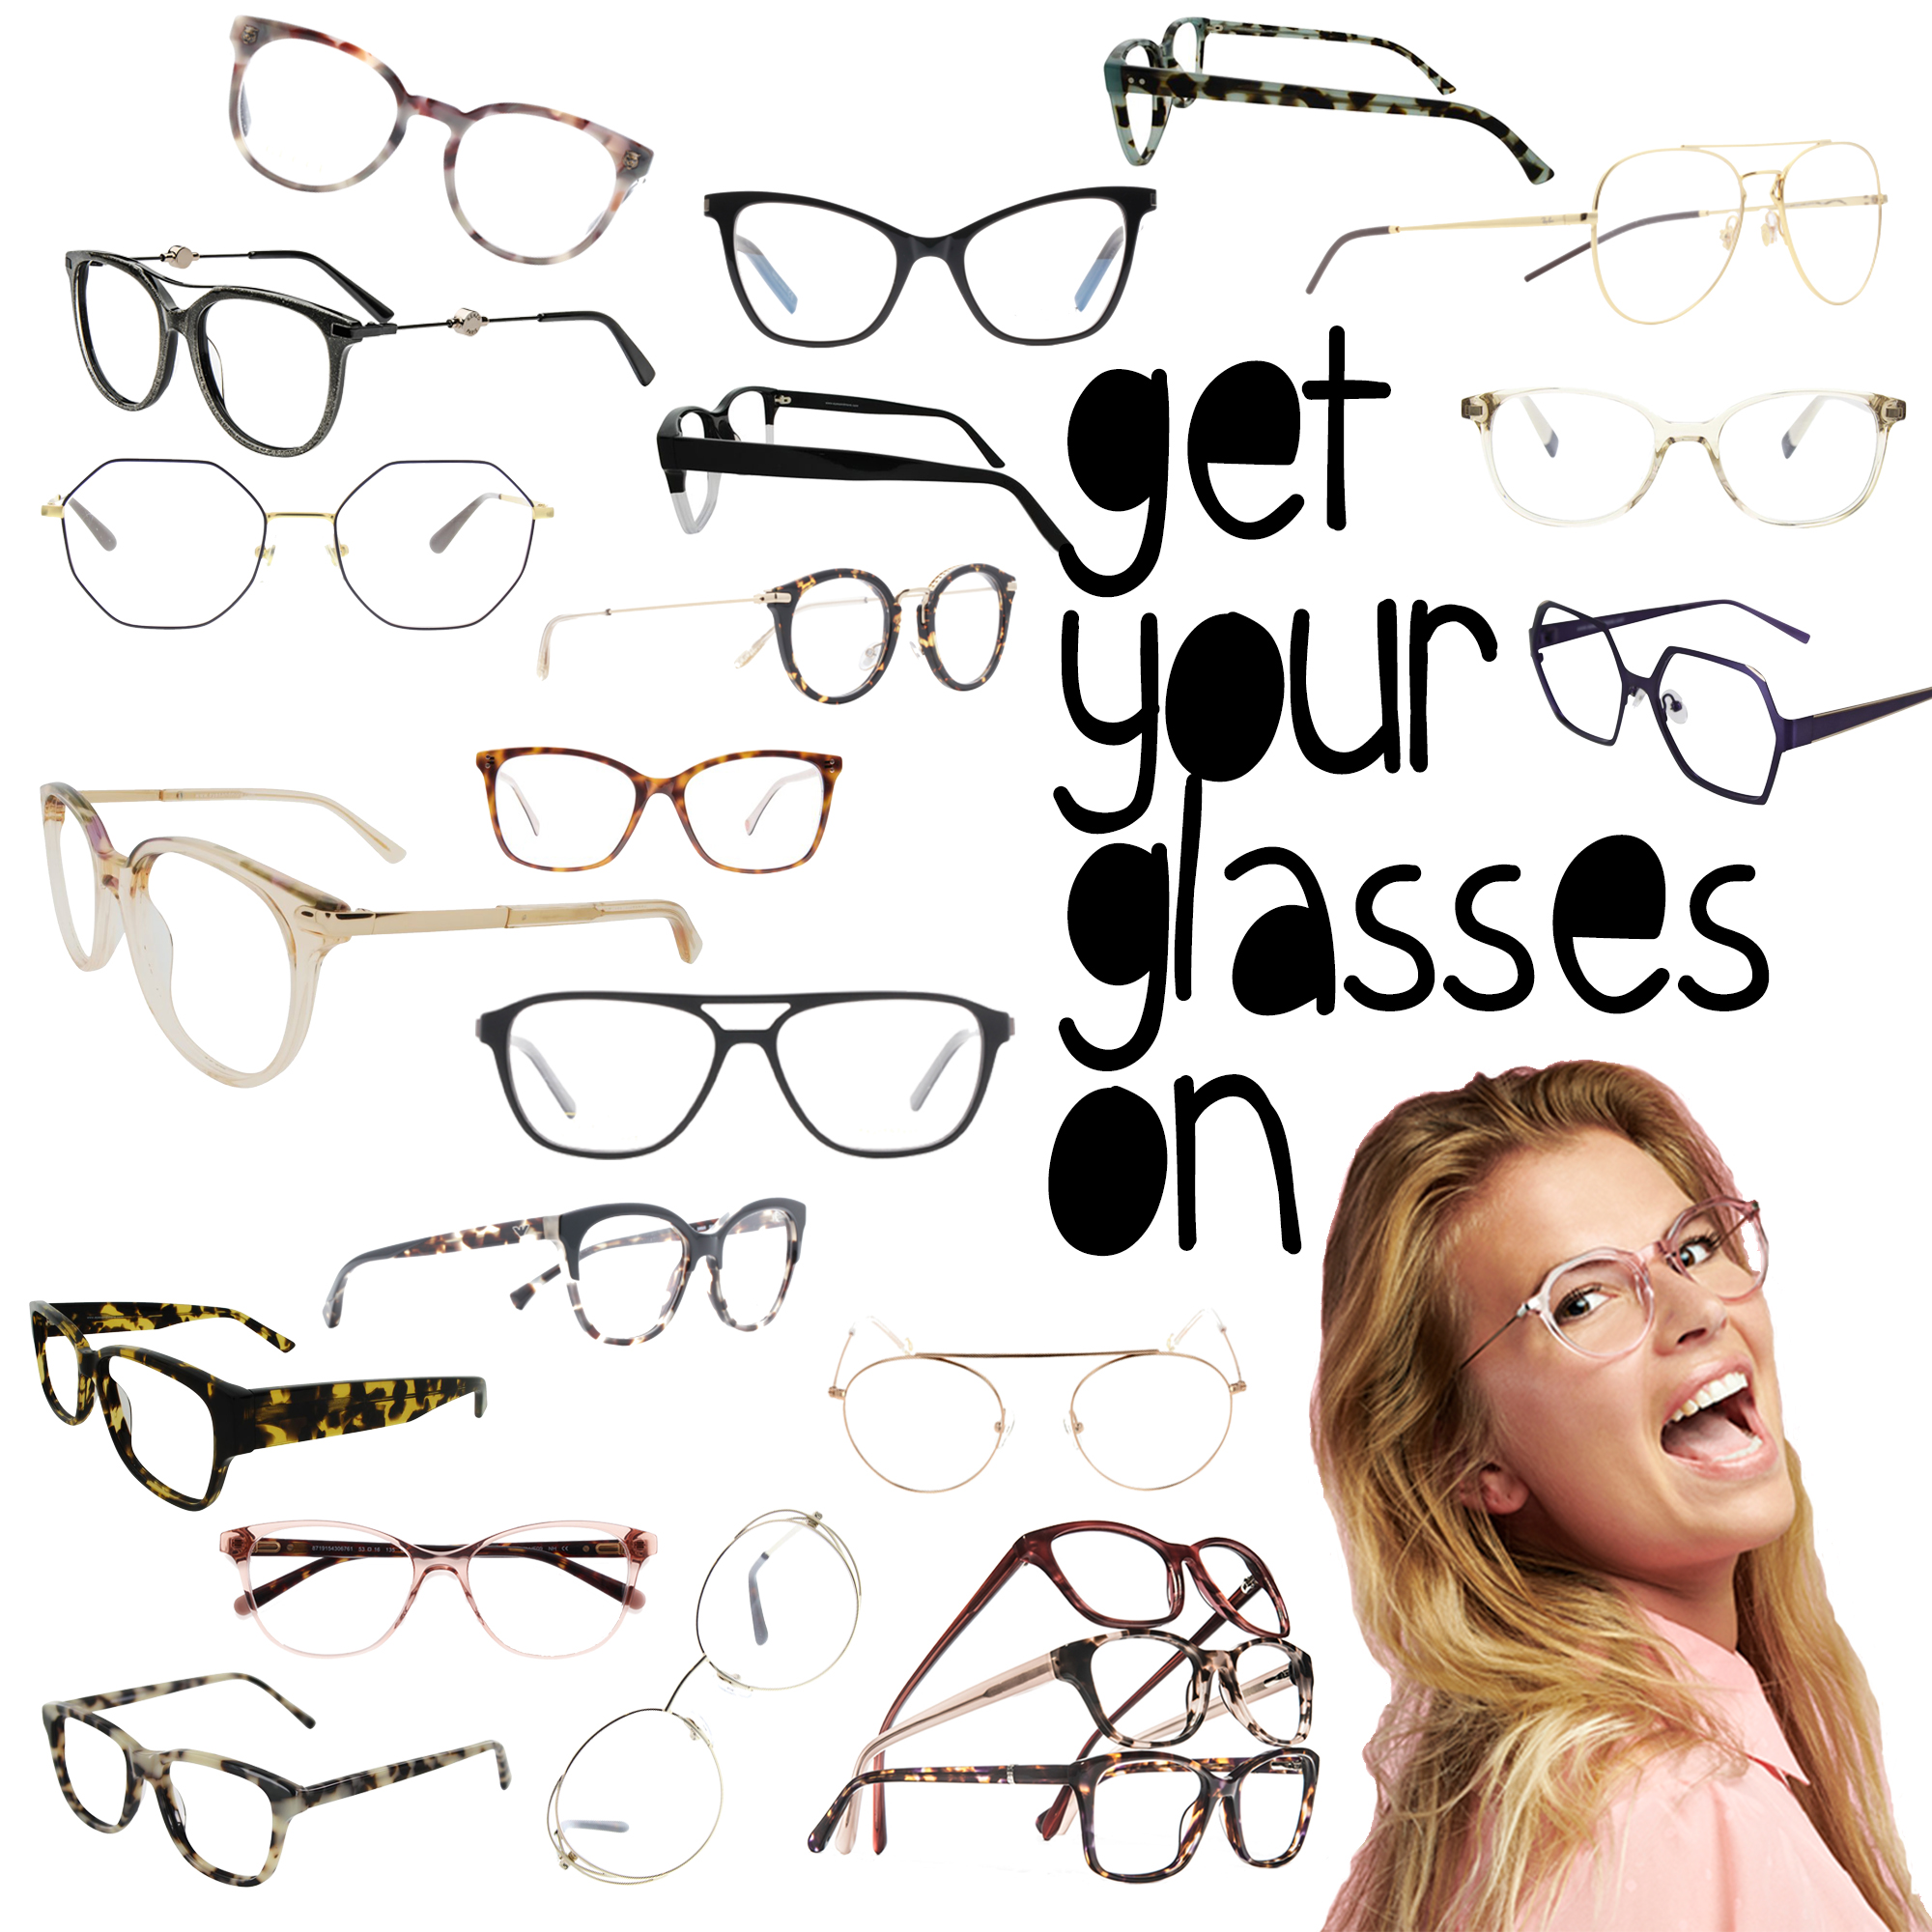 Get your glasses on!